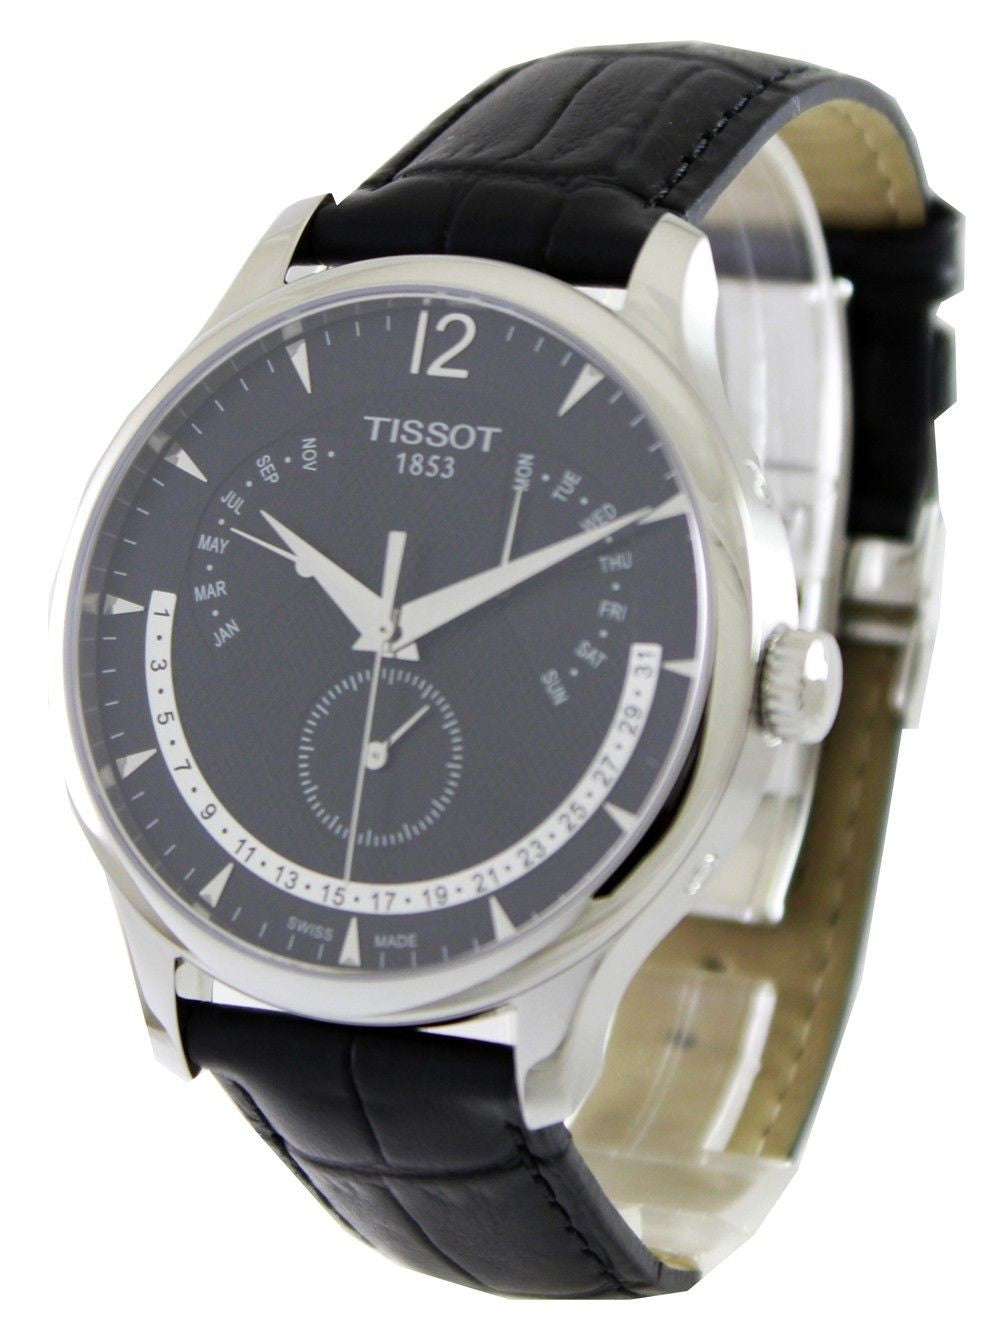 Tissot Tradition Perpetual Calender T063.637.16.057.00 - Men Tribe